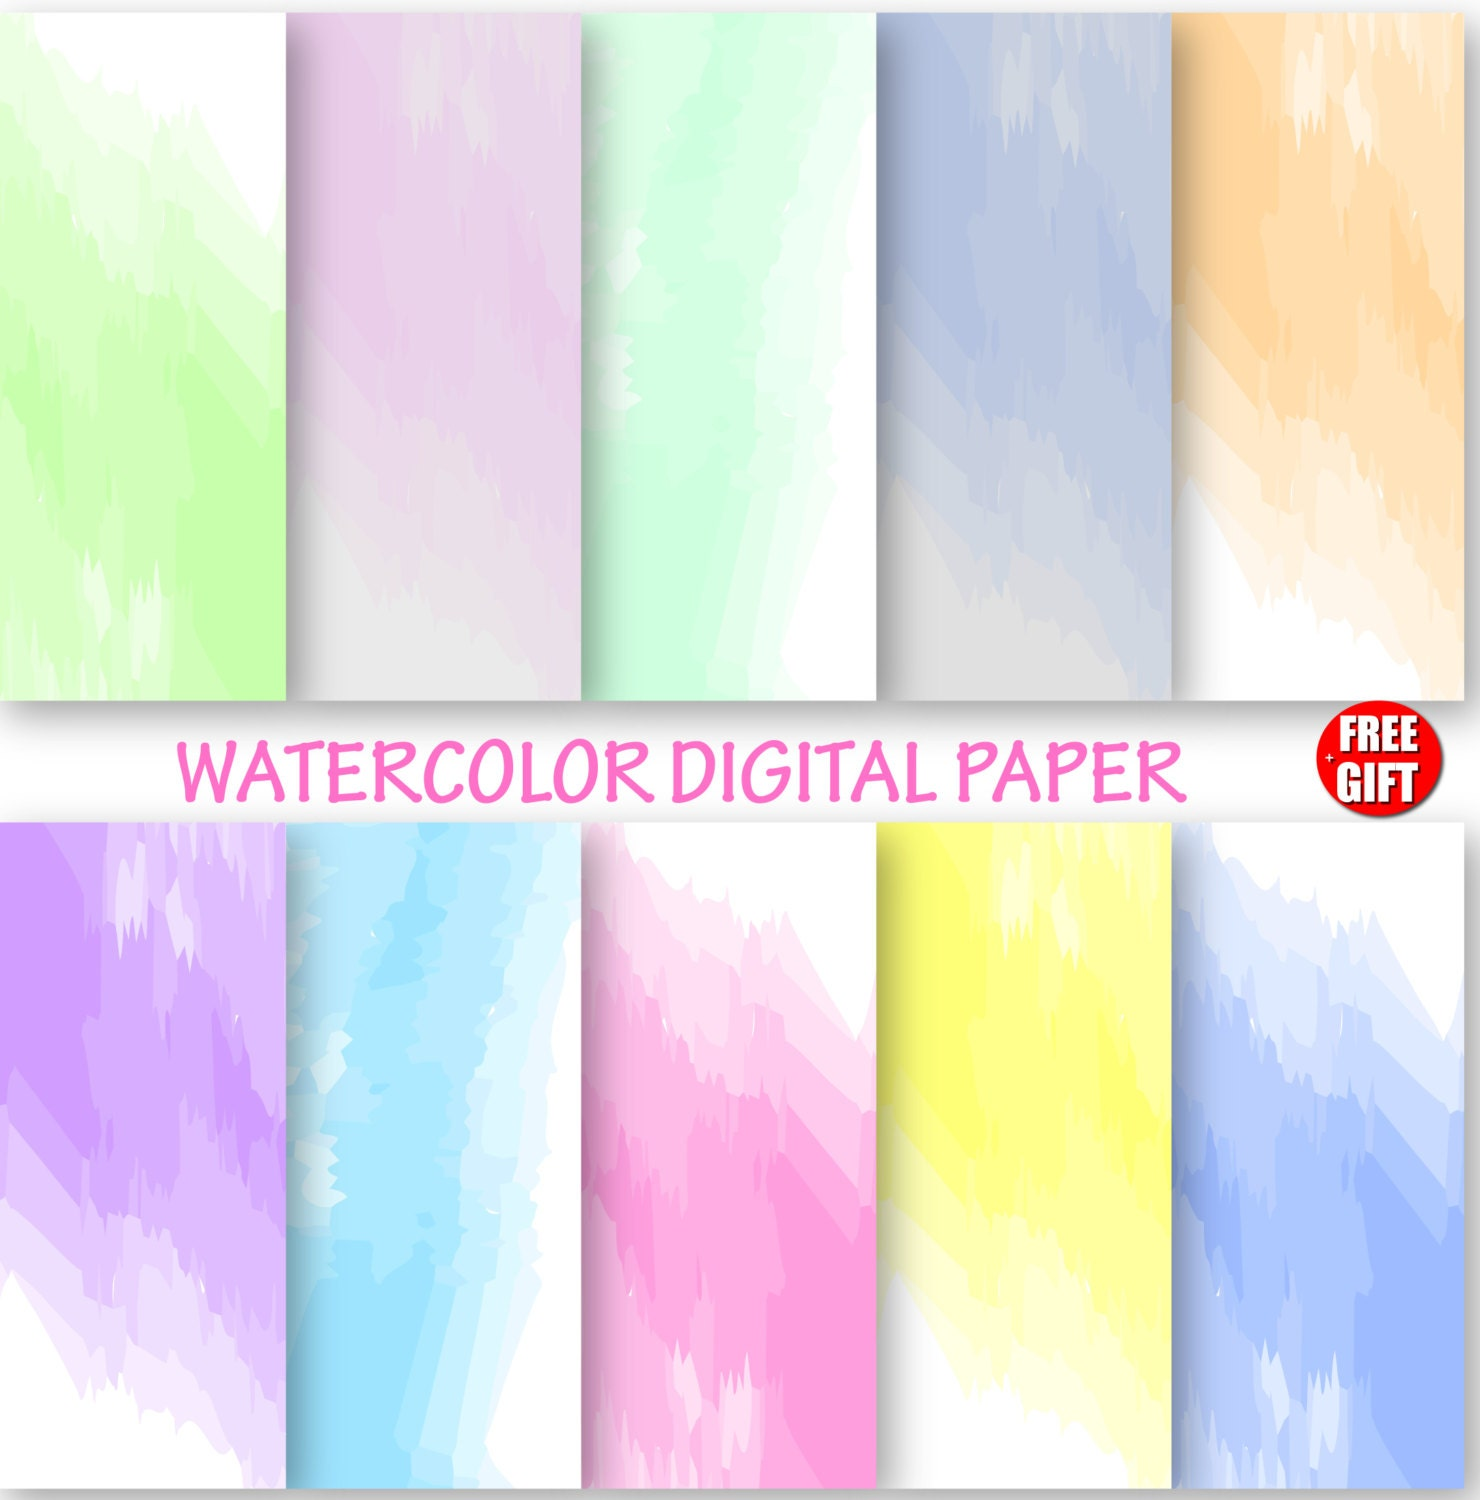 Watercolor Digital Paper Water Color Wallpaper Ombre DIY Background Use And Print Baby Shower Gift Wrapping Ideas From DIGIFT On